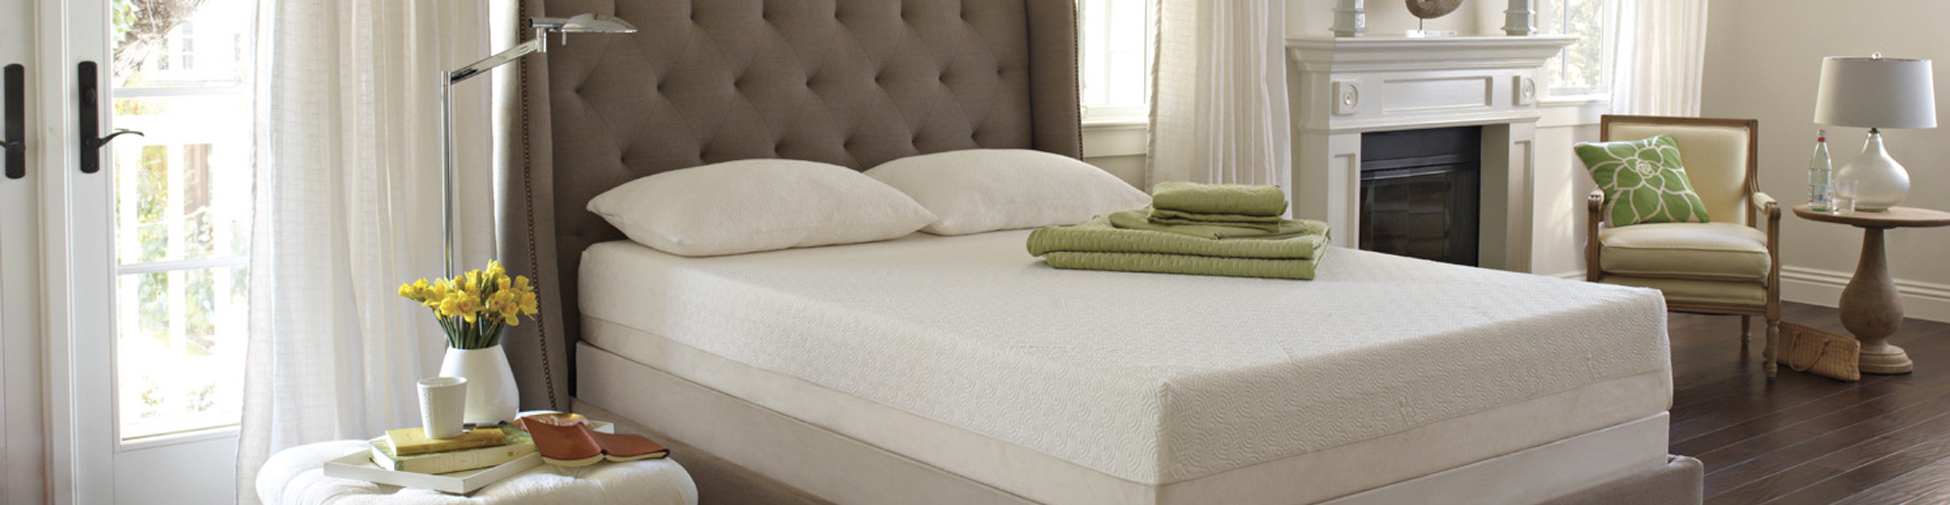 mattress store crofton maryland | brand name mattresses